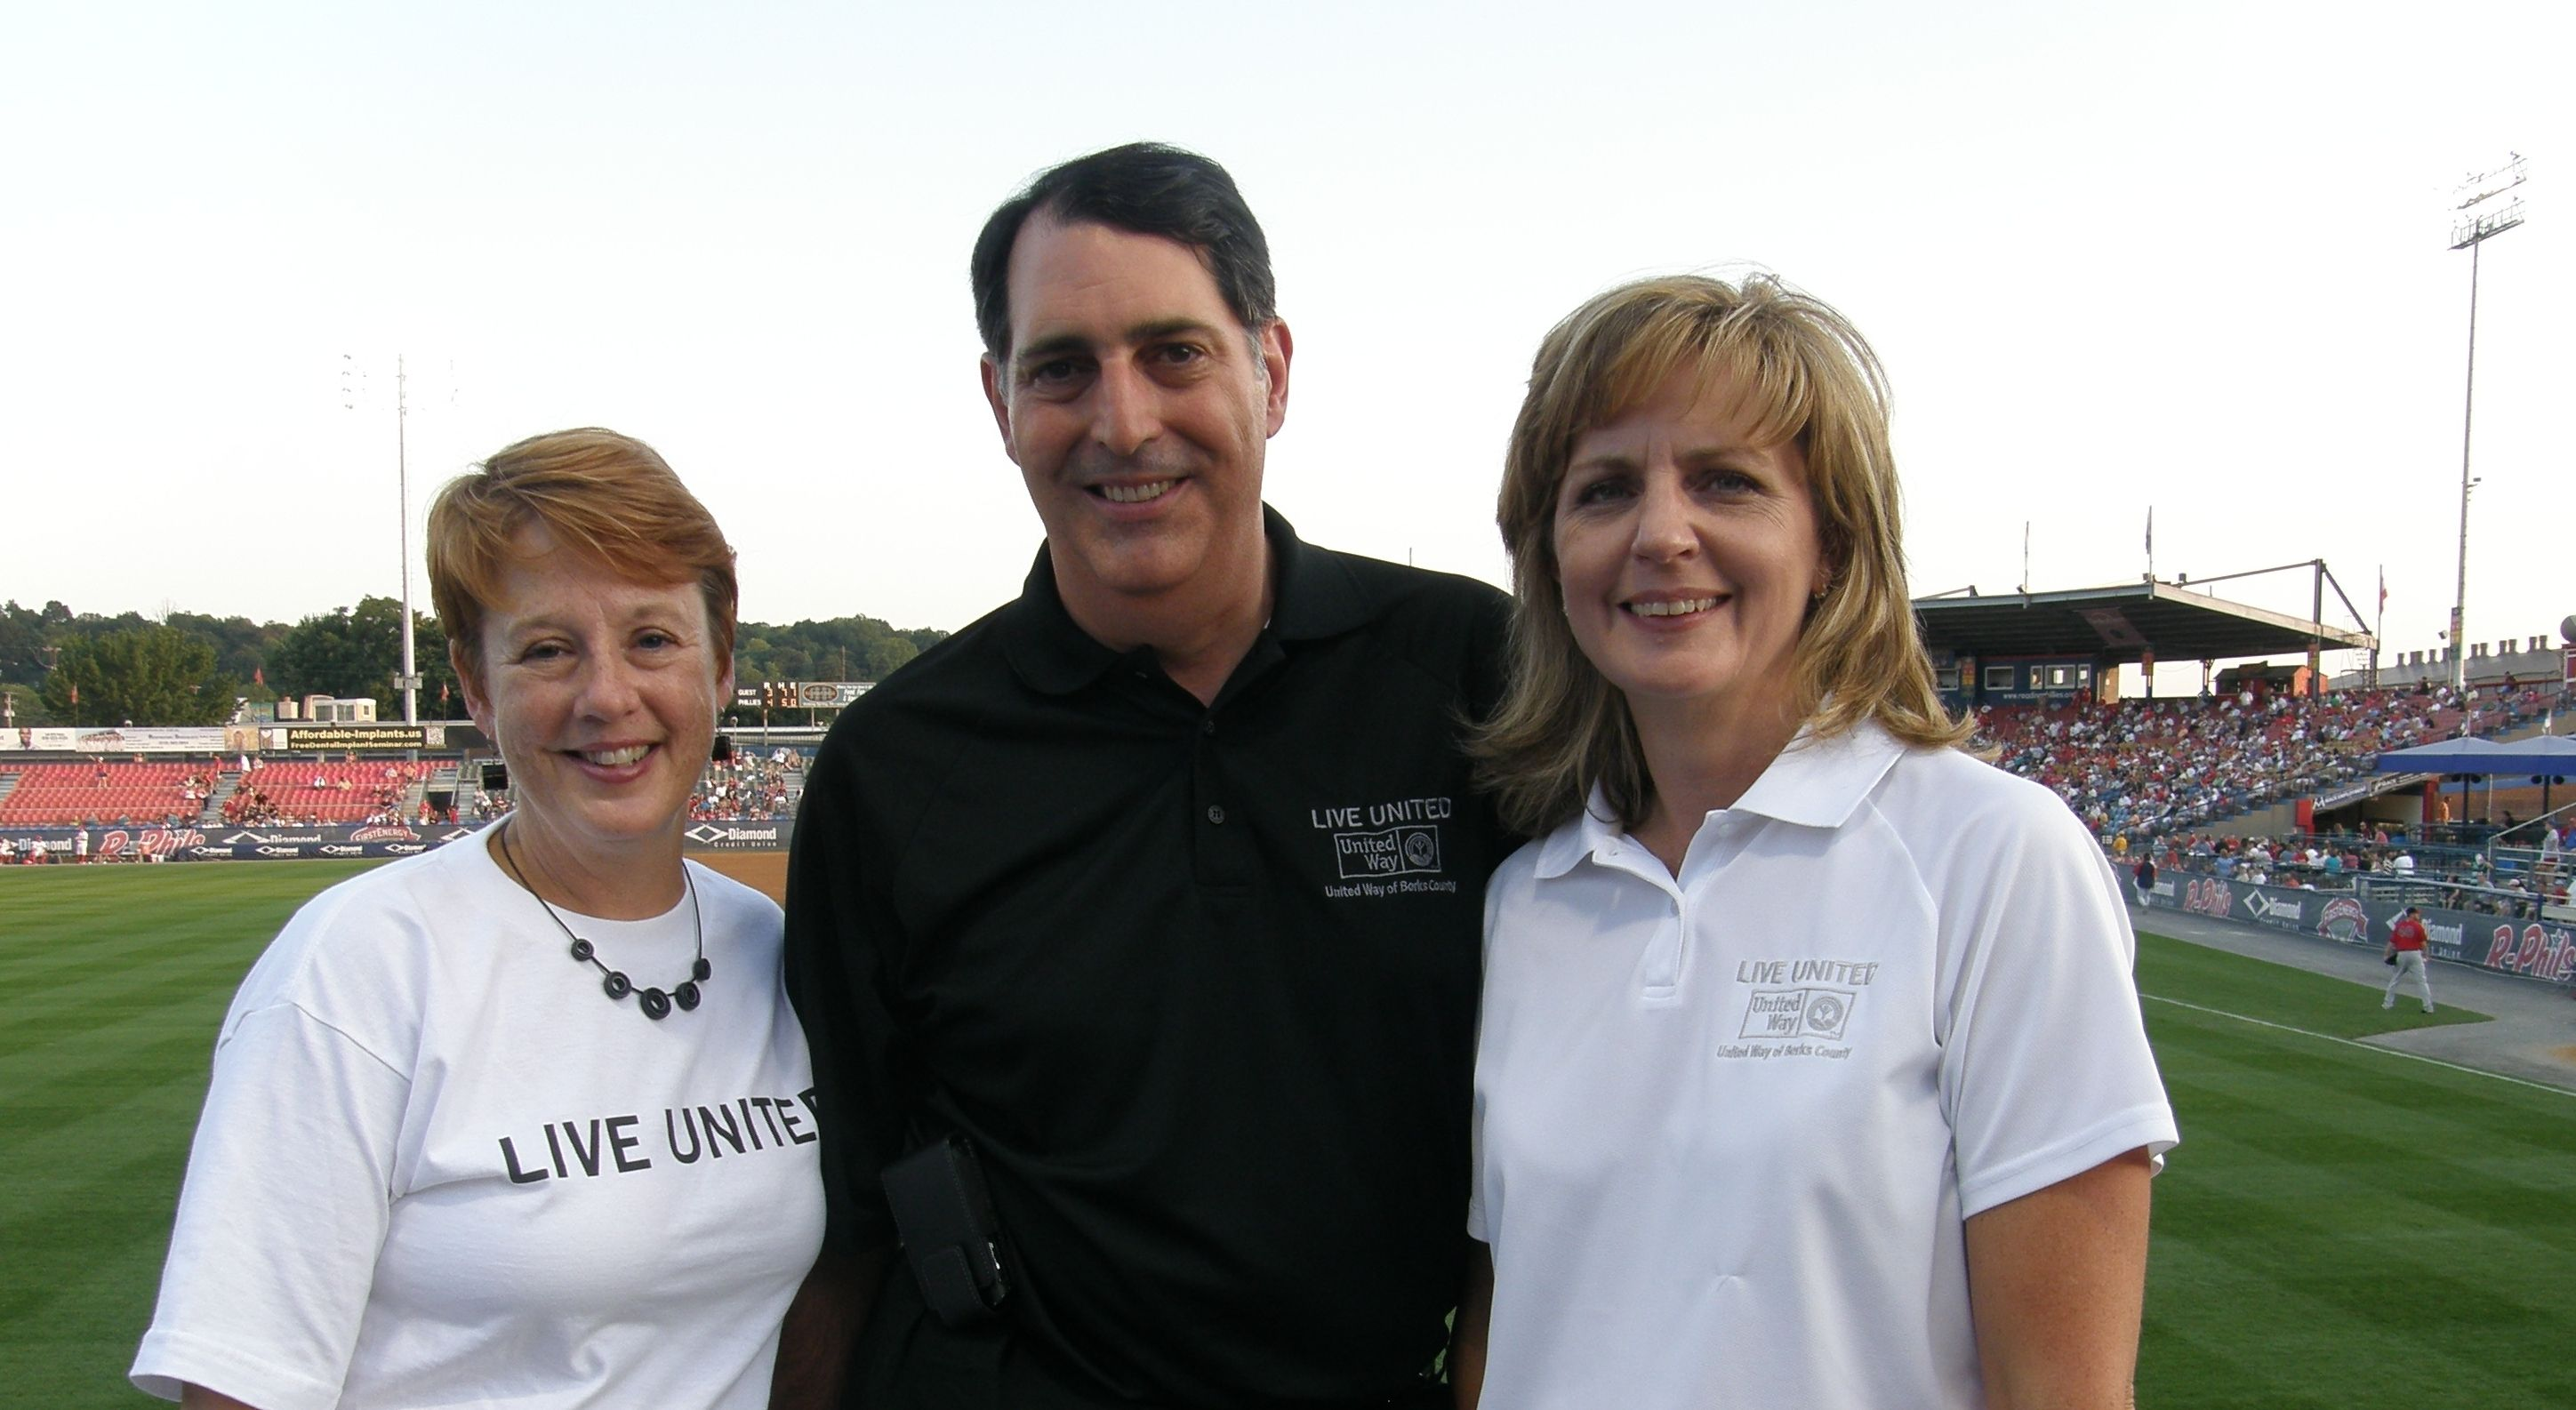 Penske Executive Encourages United Way Support